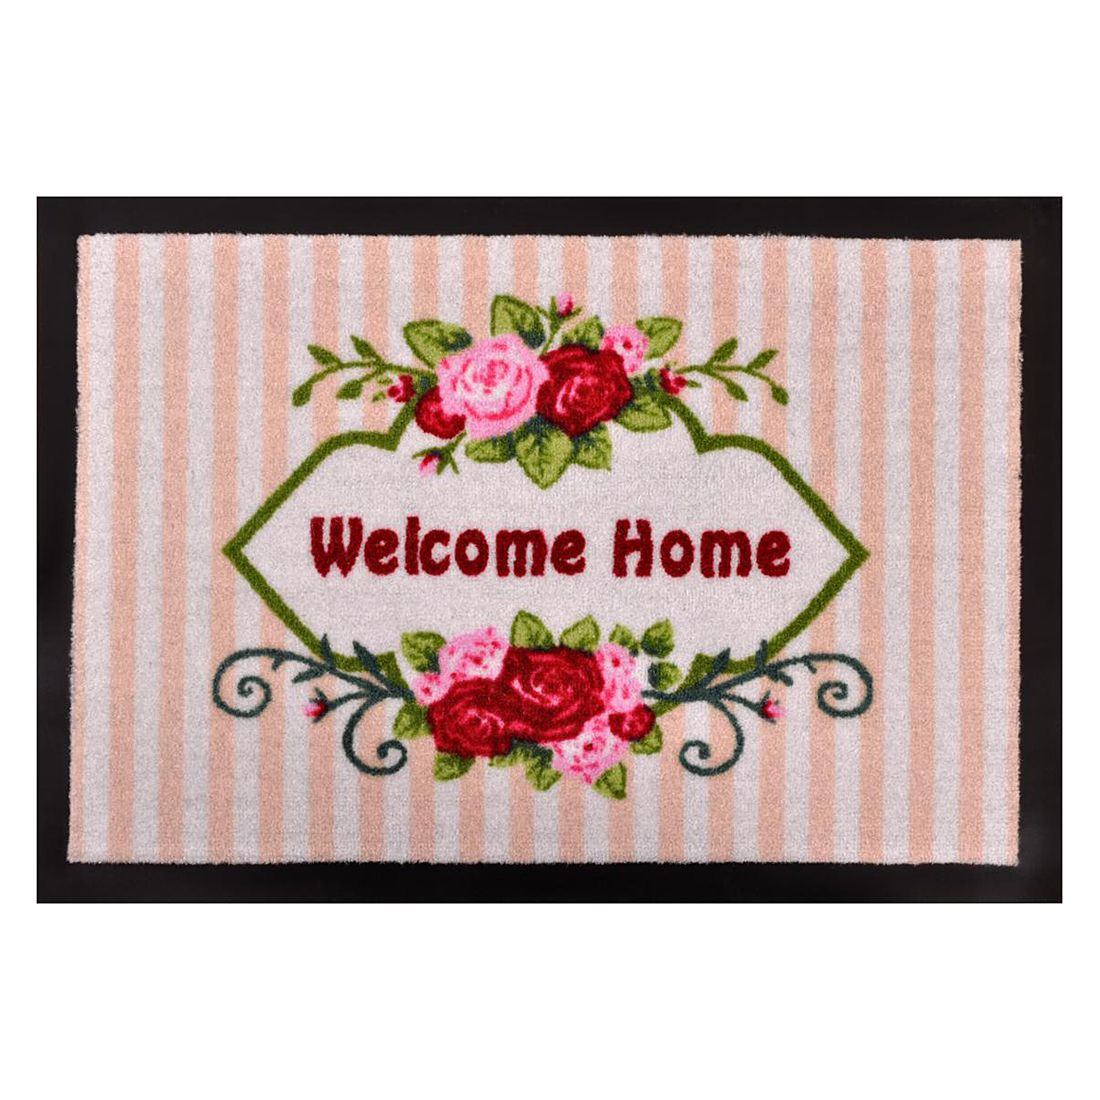 Fußmatte Printy Welcome Home – Mehrfarbig – 40 x 60 cm – 40 x 60 cm, Hanse Home Collection günstig